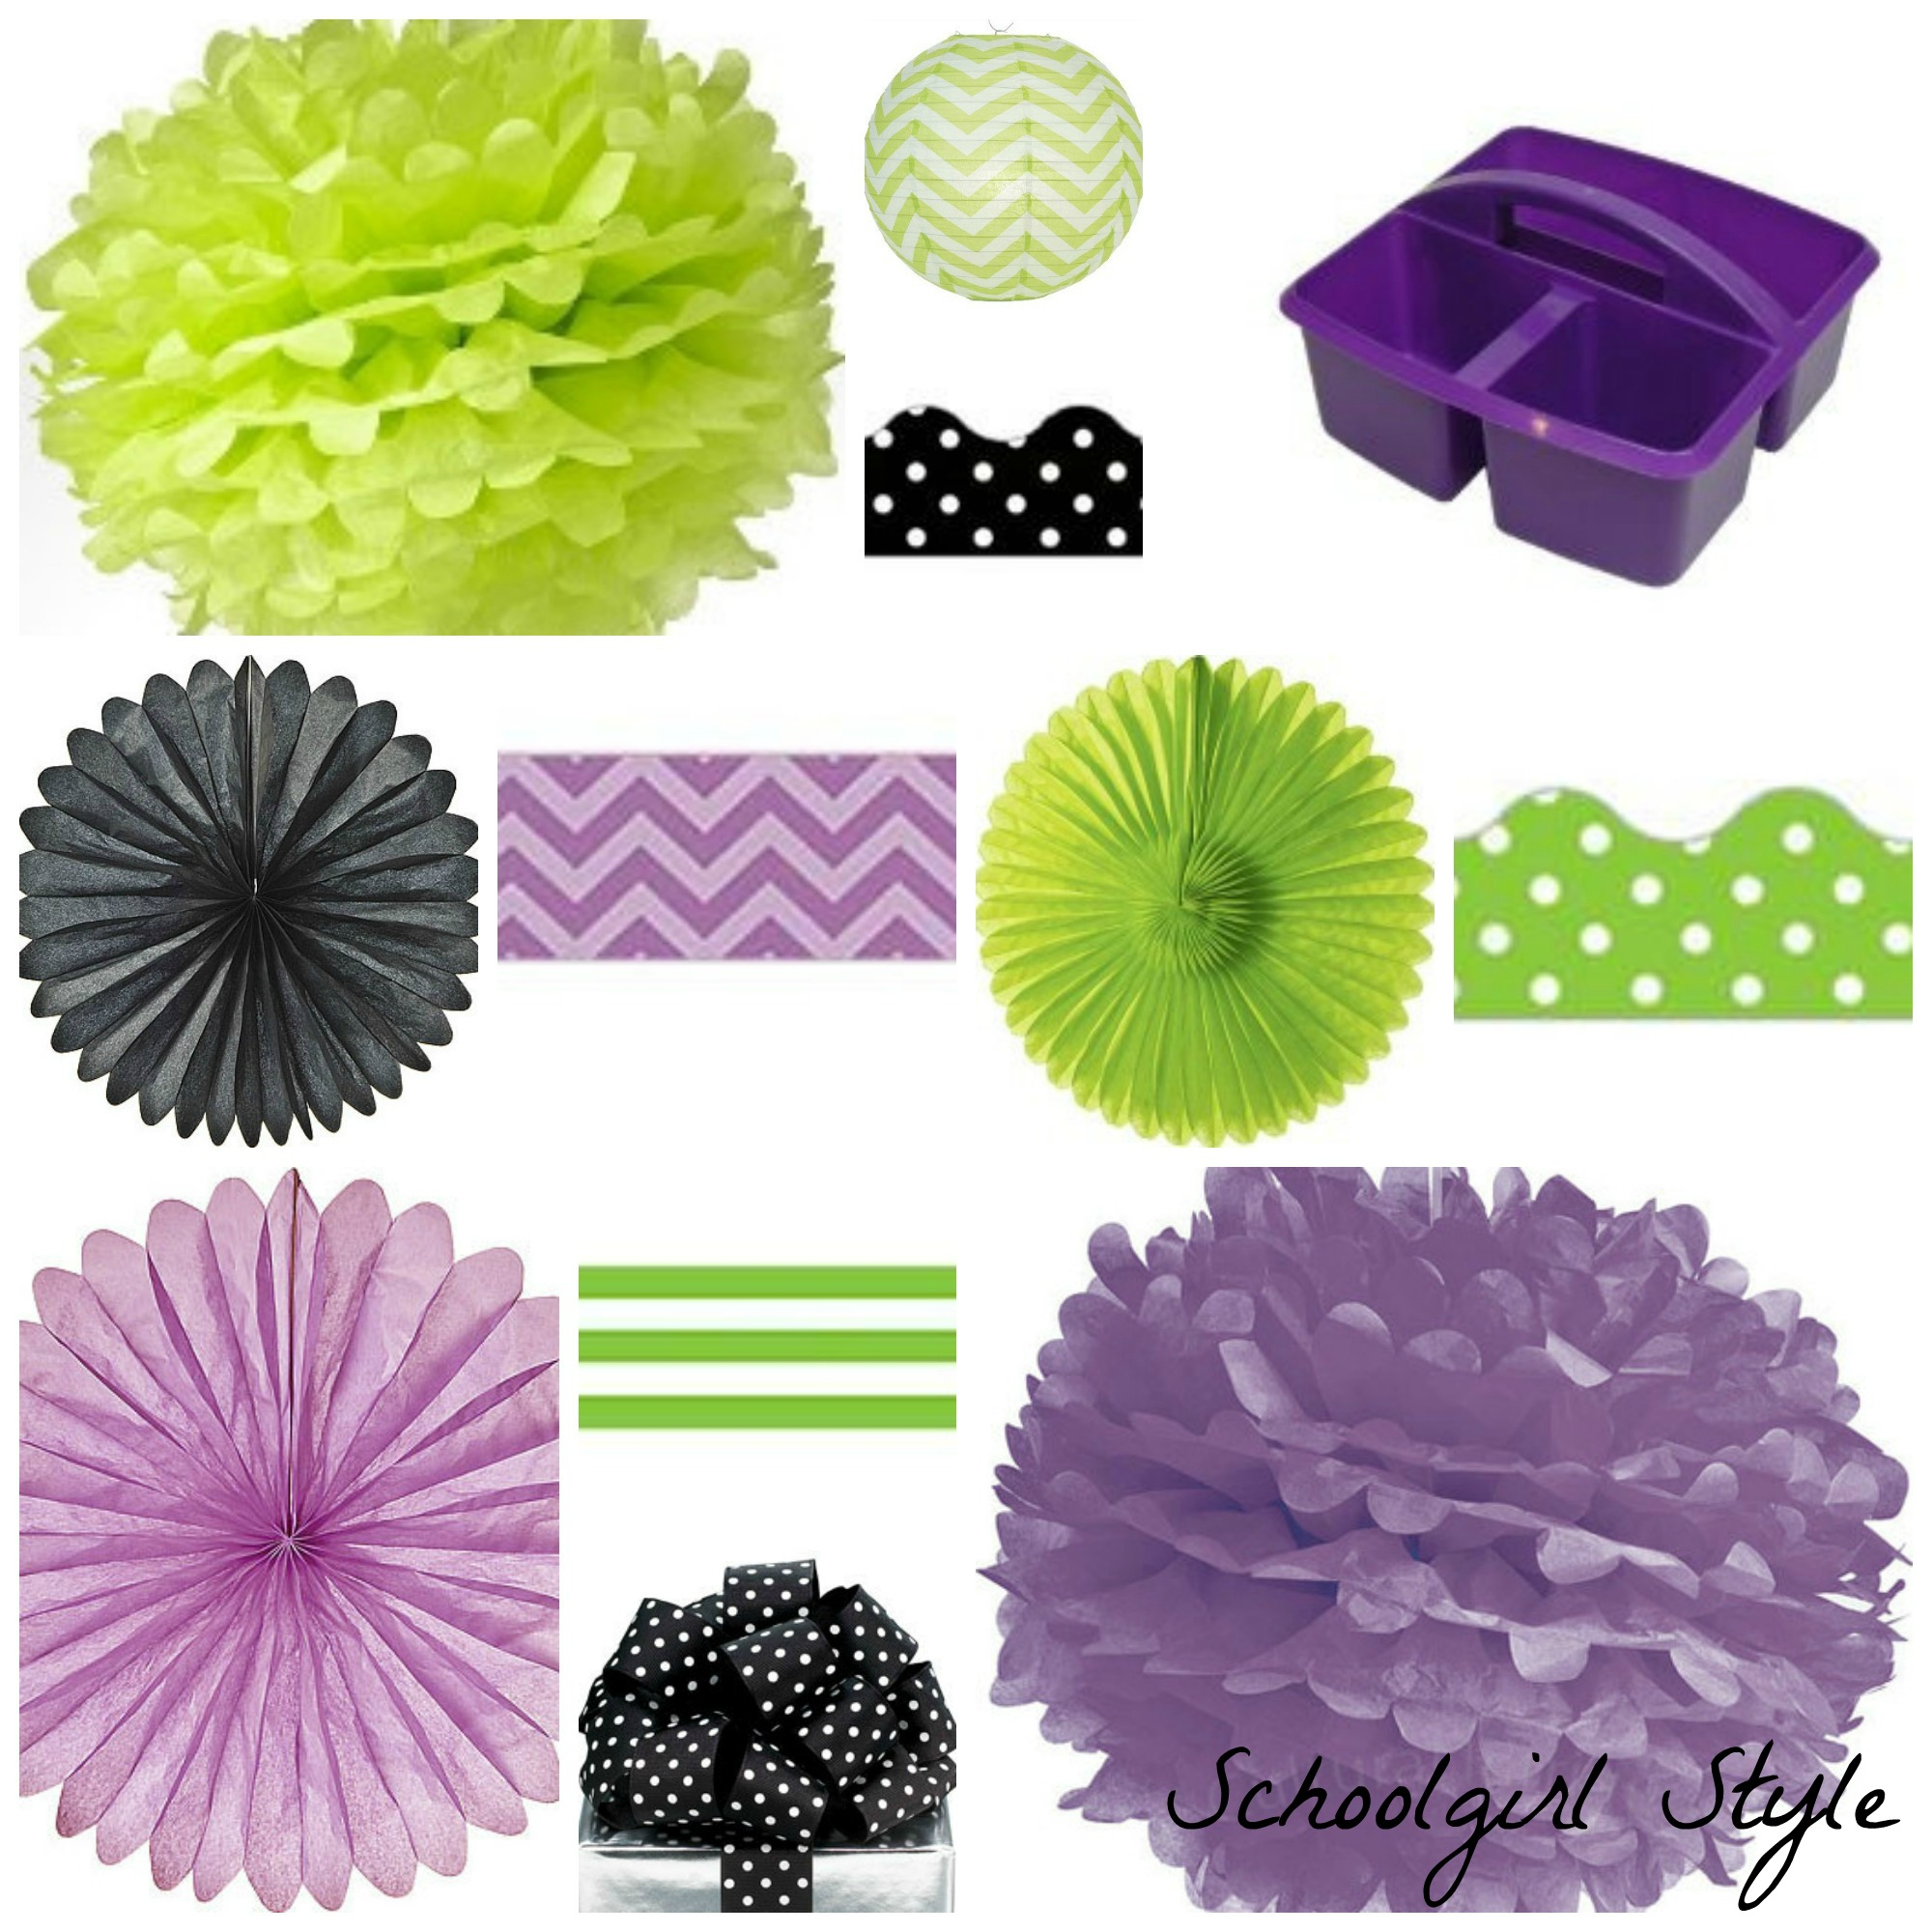 purple chalkboard lime green black polka dot party by Schoolgirl Style